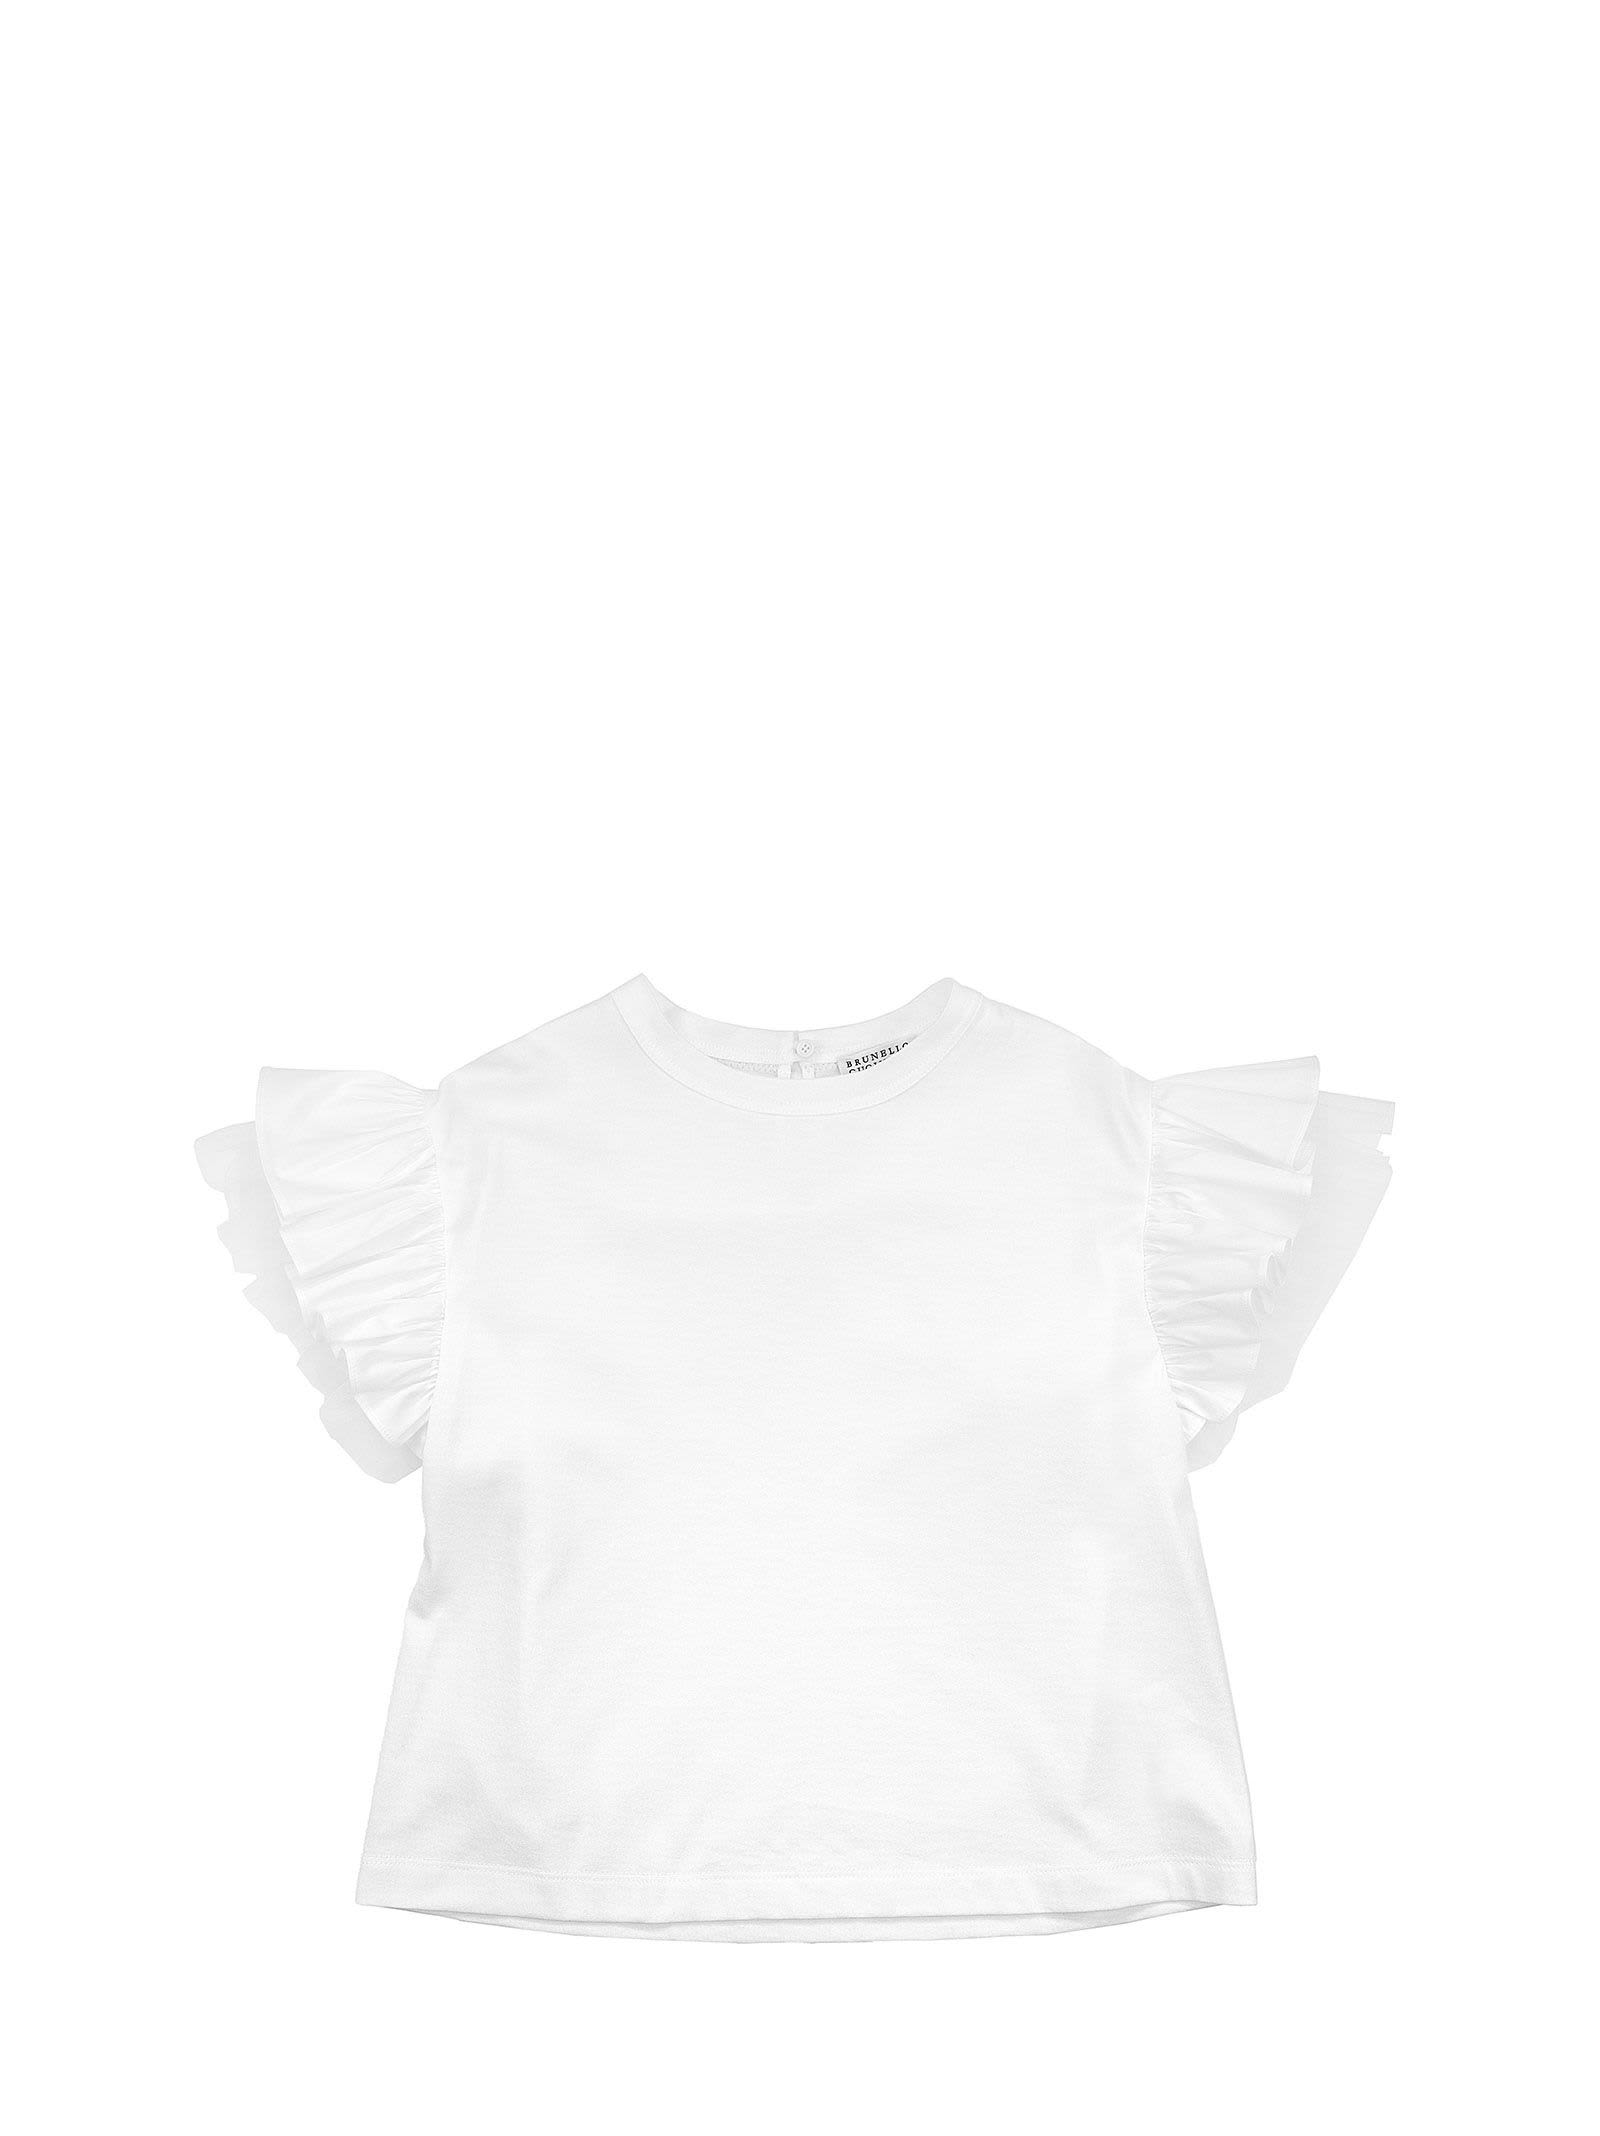 Brunello Cucinelli LIGHTWEIGHT COTTON JERSEY T-SHIRT WITH POPLIN AND TULLE INSERTS